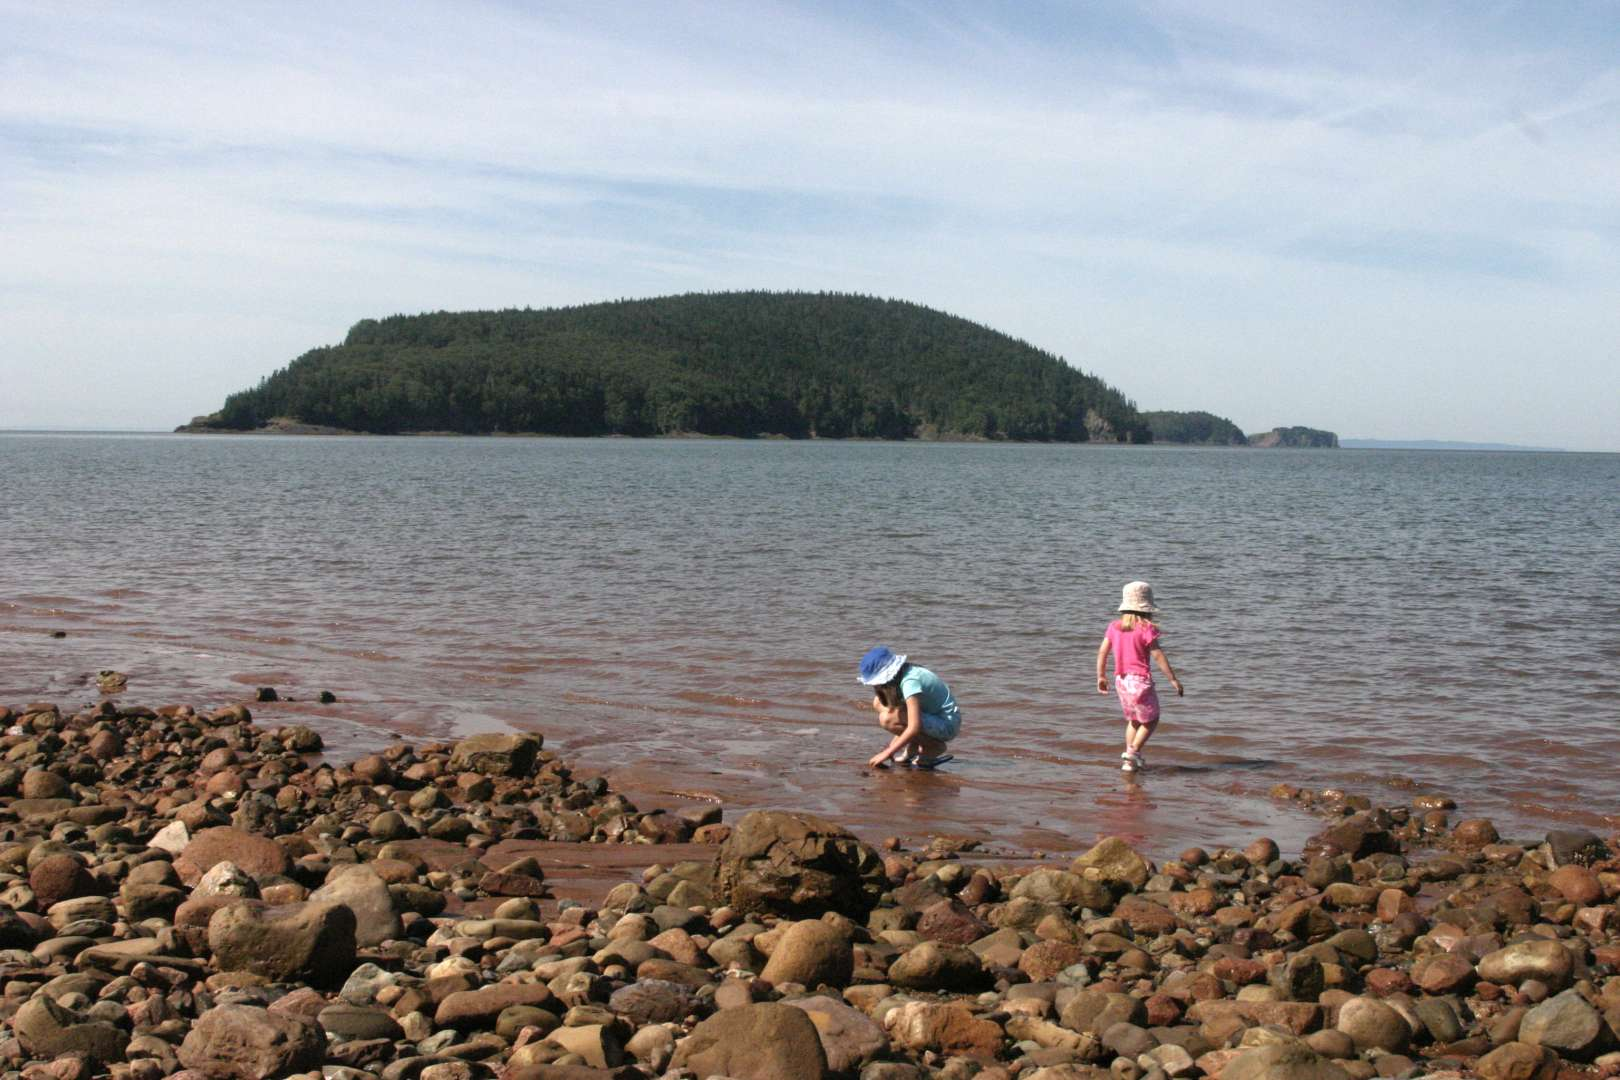 Children play in the tide waters at Five Islands provincial park near Ecomony, Nova Scotia.